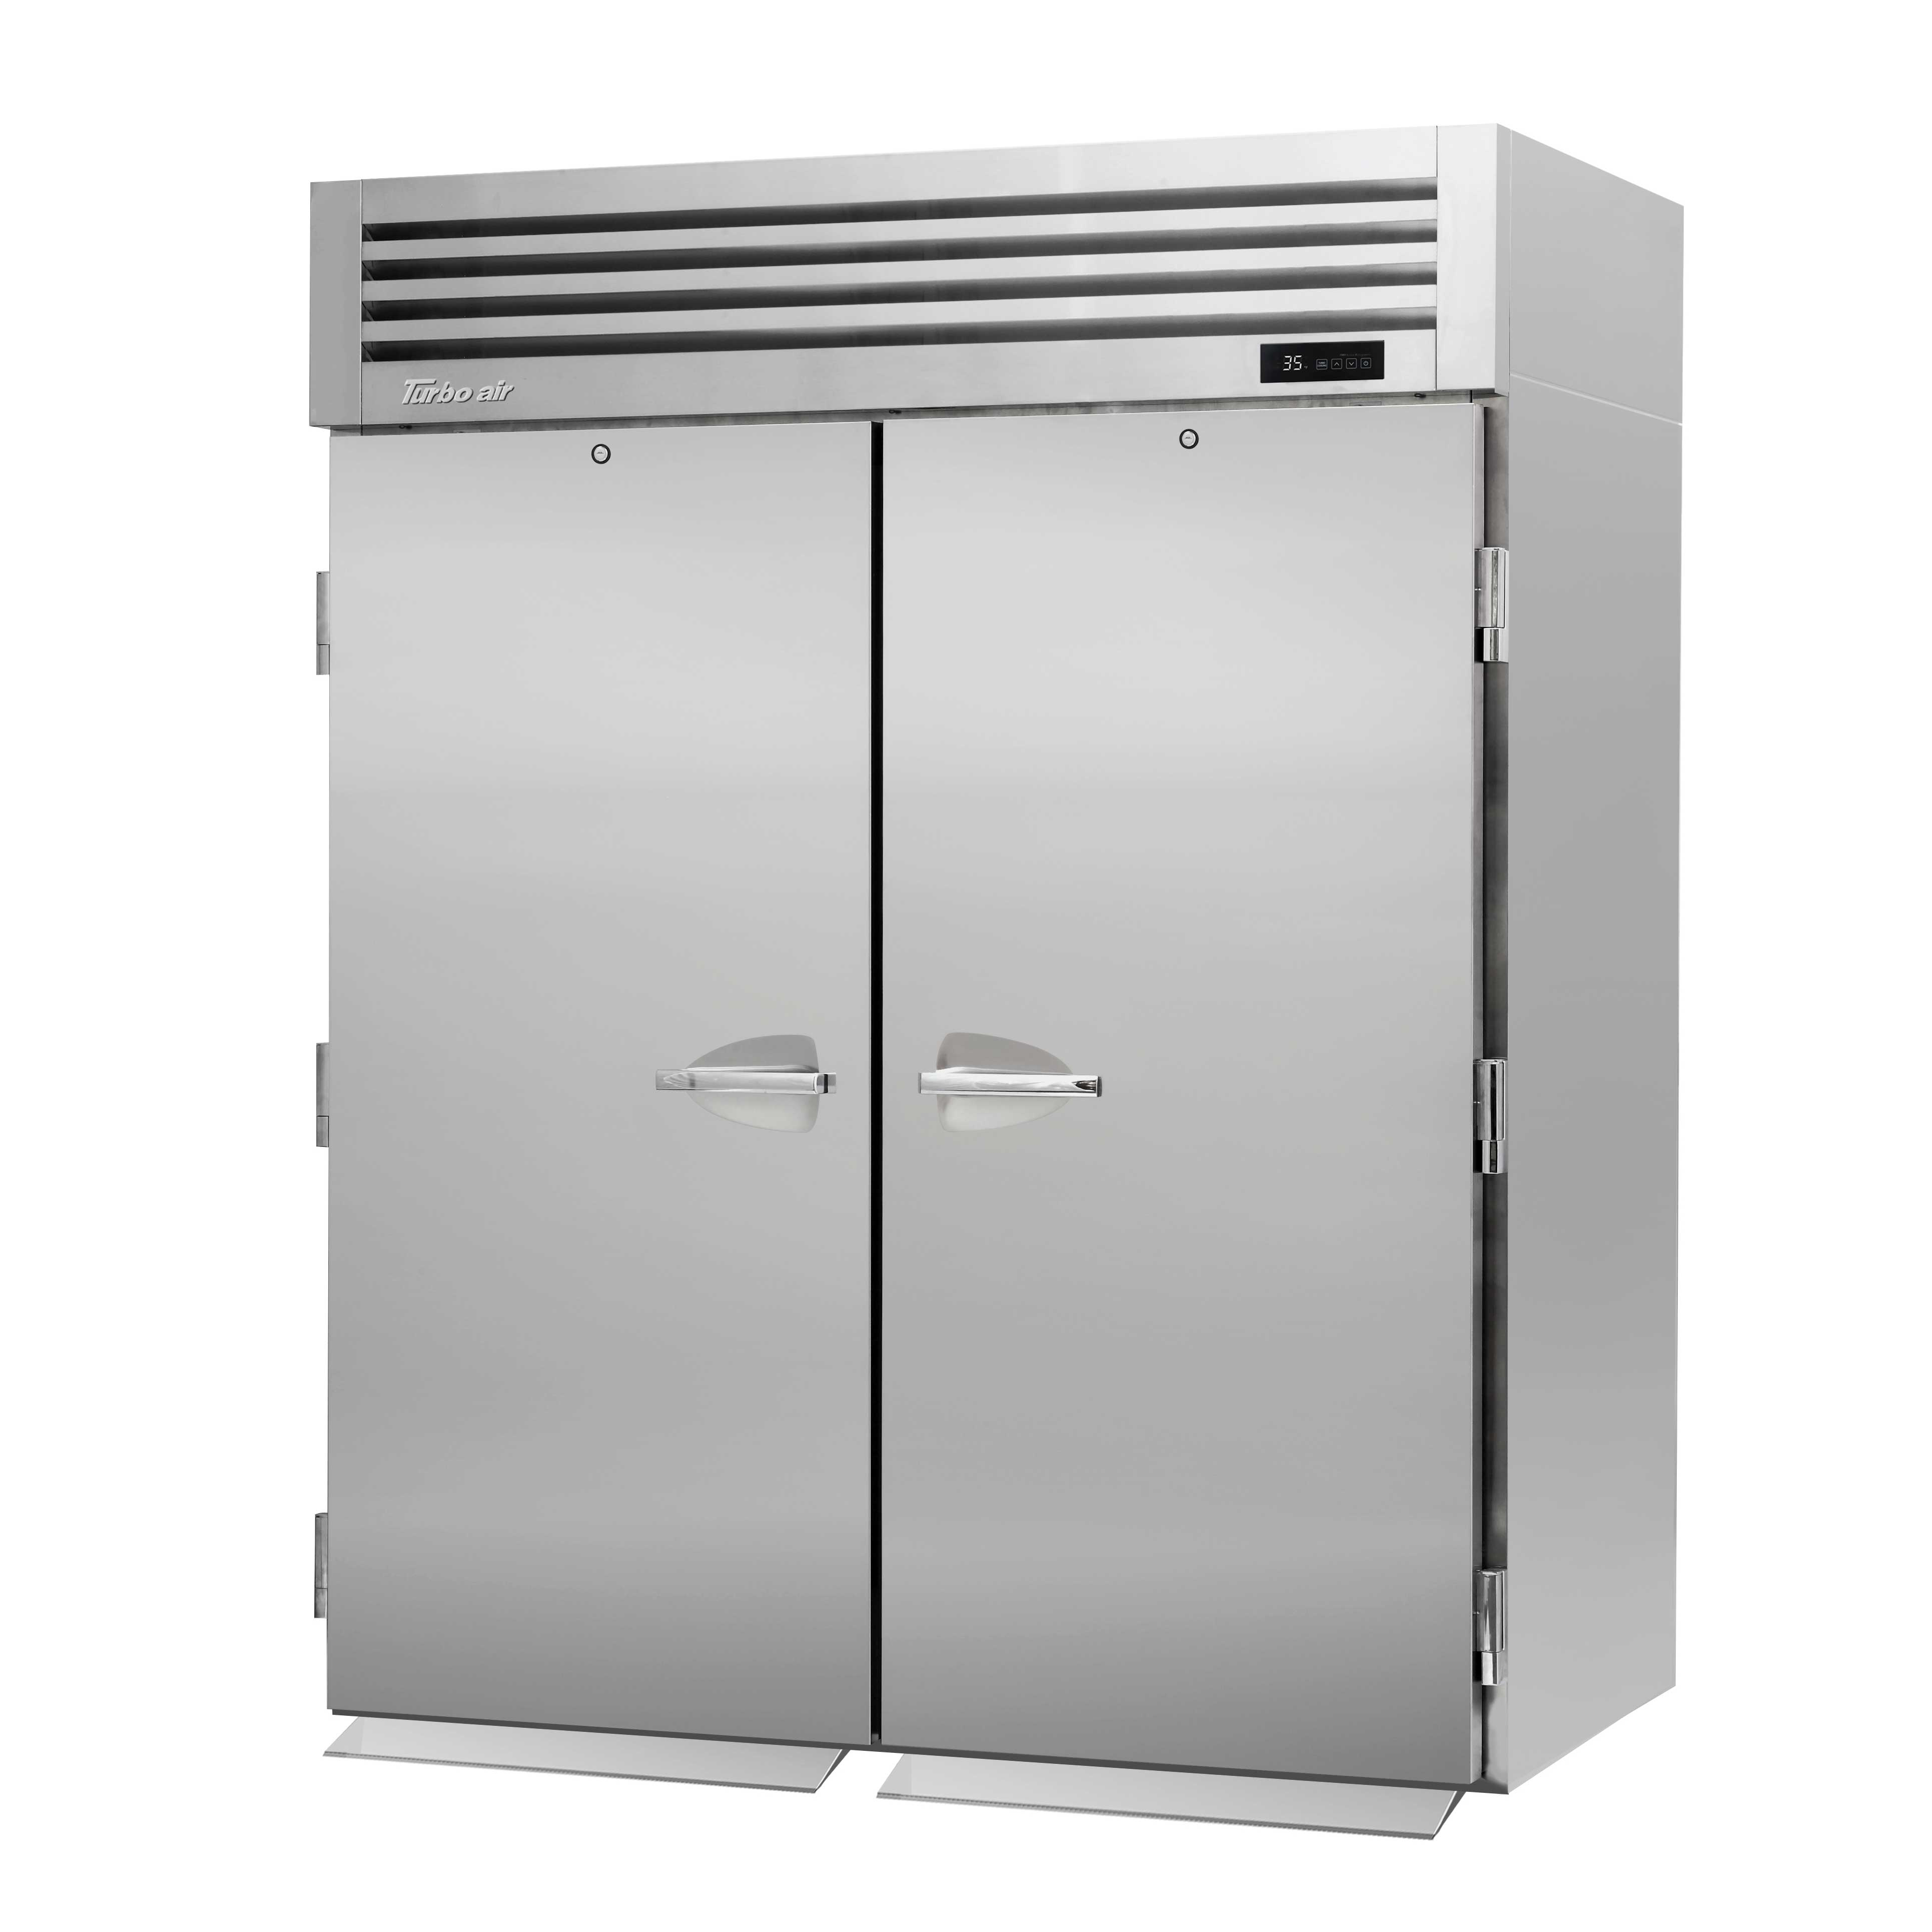 Turbo Air PRO-50R-RI-N refrigerator, roll-in